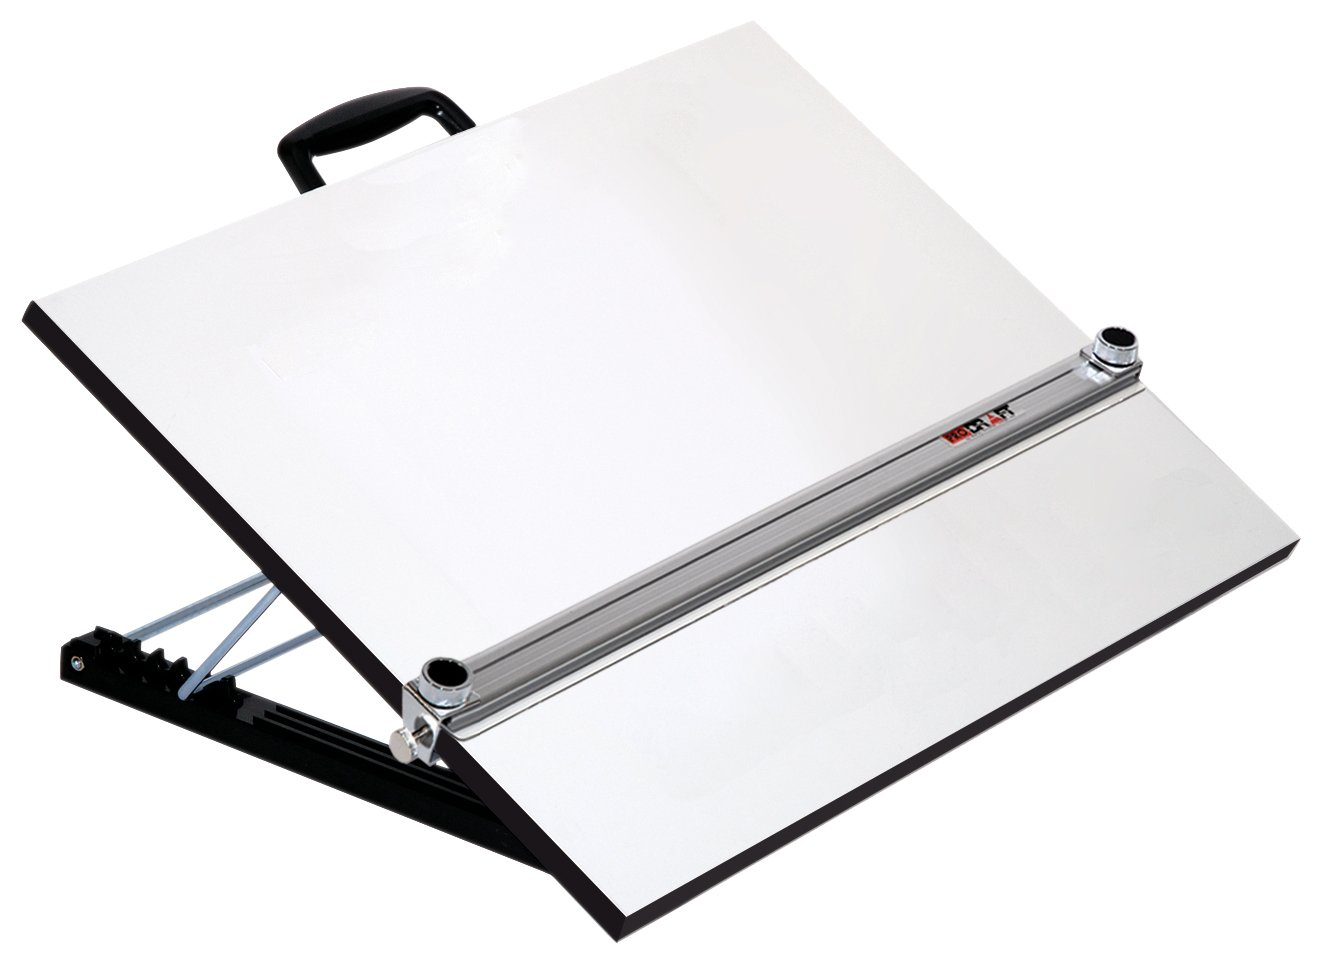 Martin Adjustable Angle Parallel Drawing Board, Extra Large, White by Martin